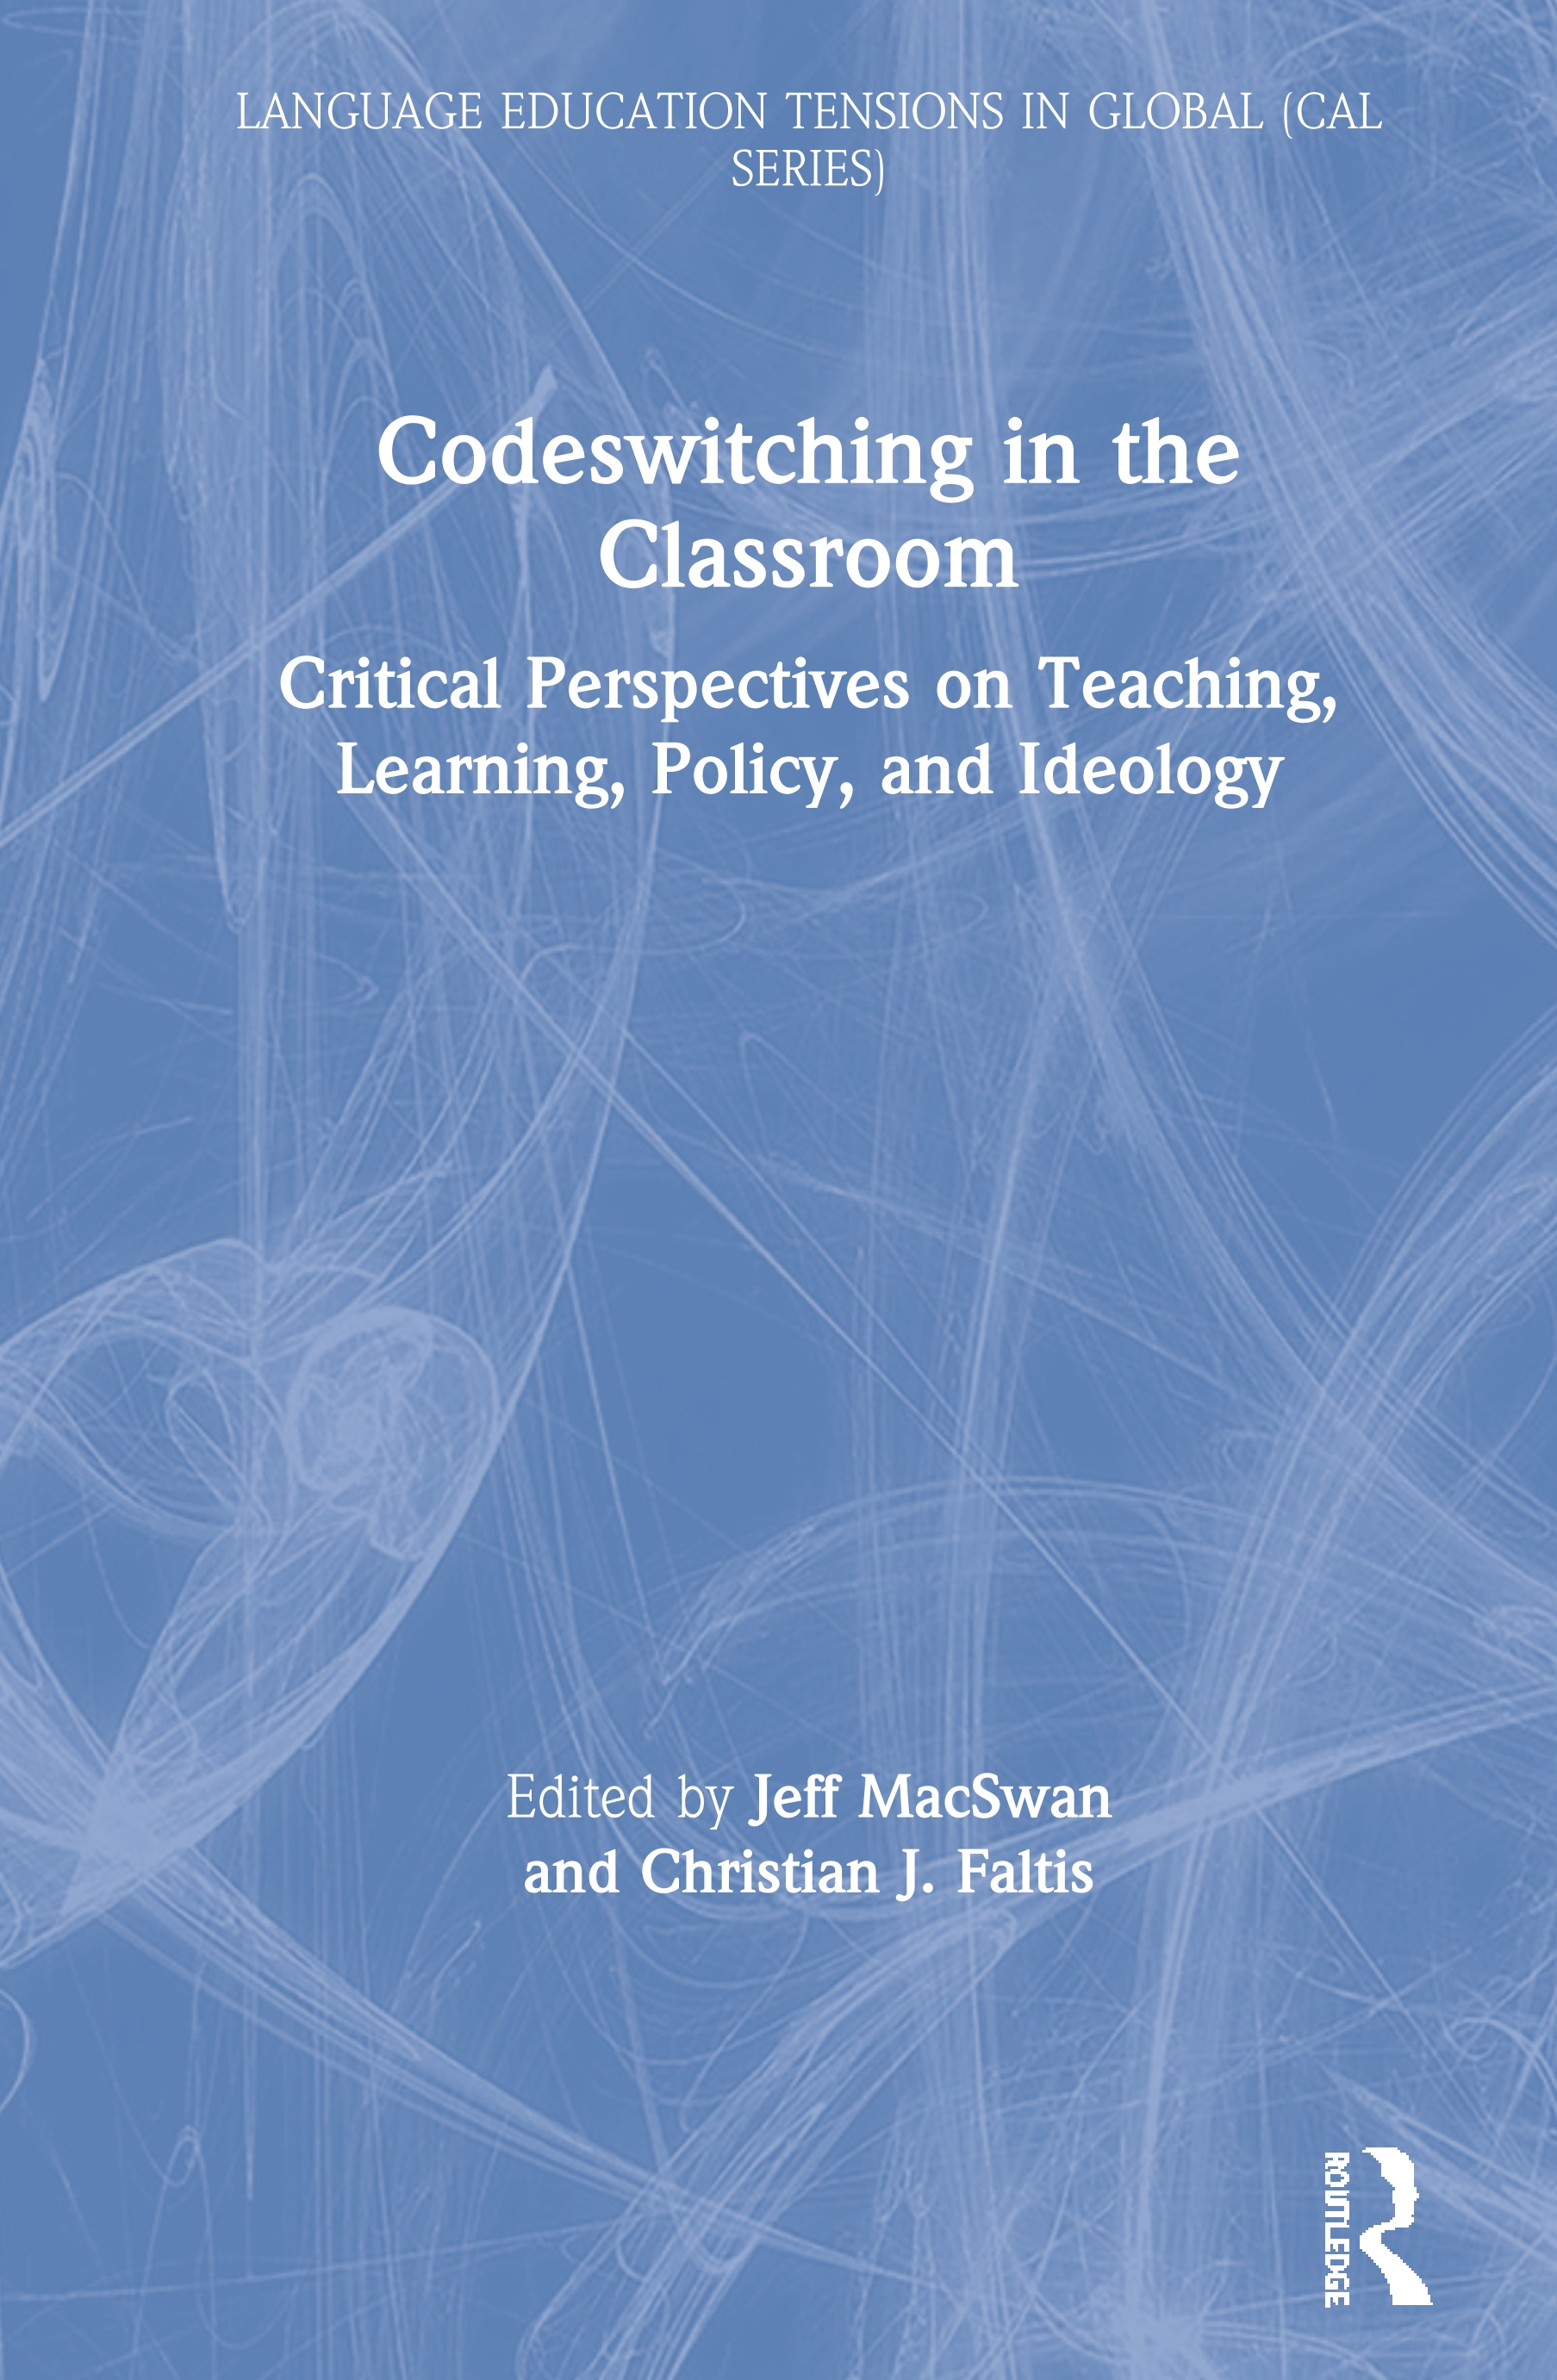 Codeswitching in the Classroom: Critical Perspectives on Teaching, Learning, Policy, and Ideology book cover